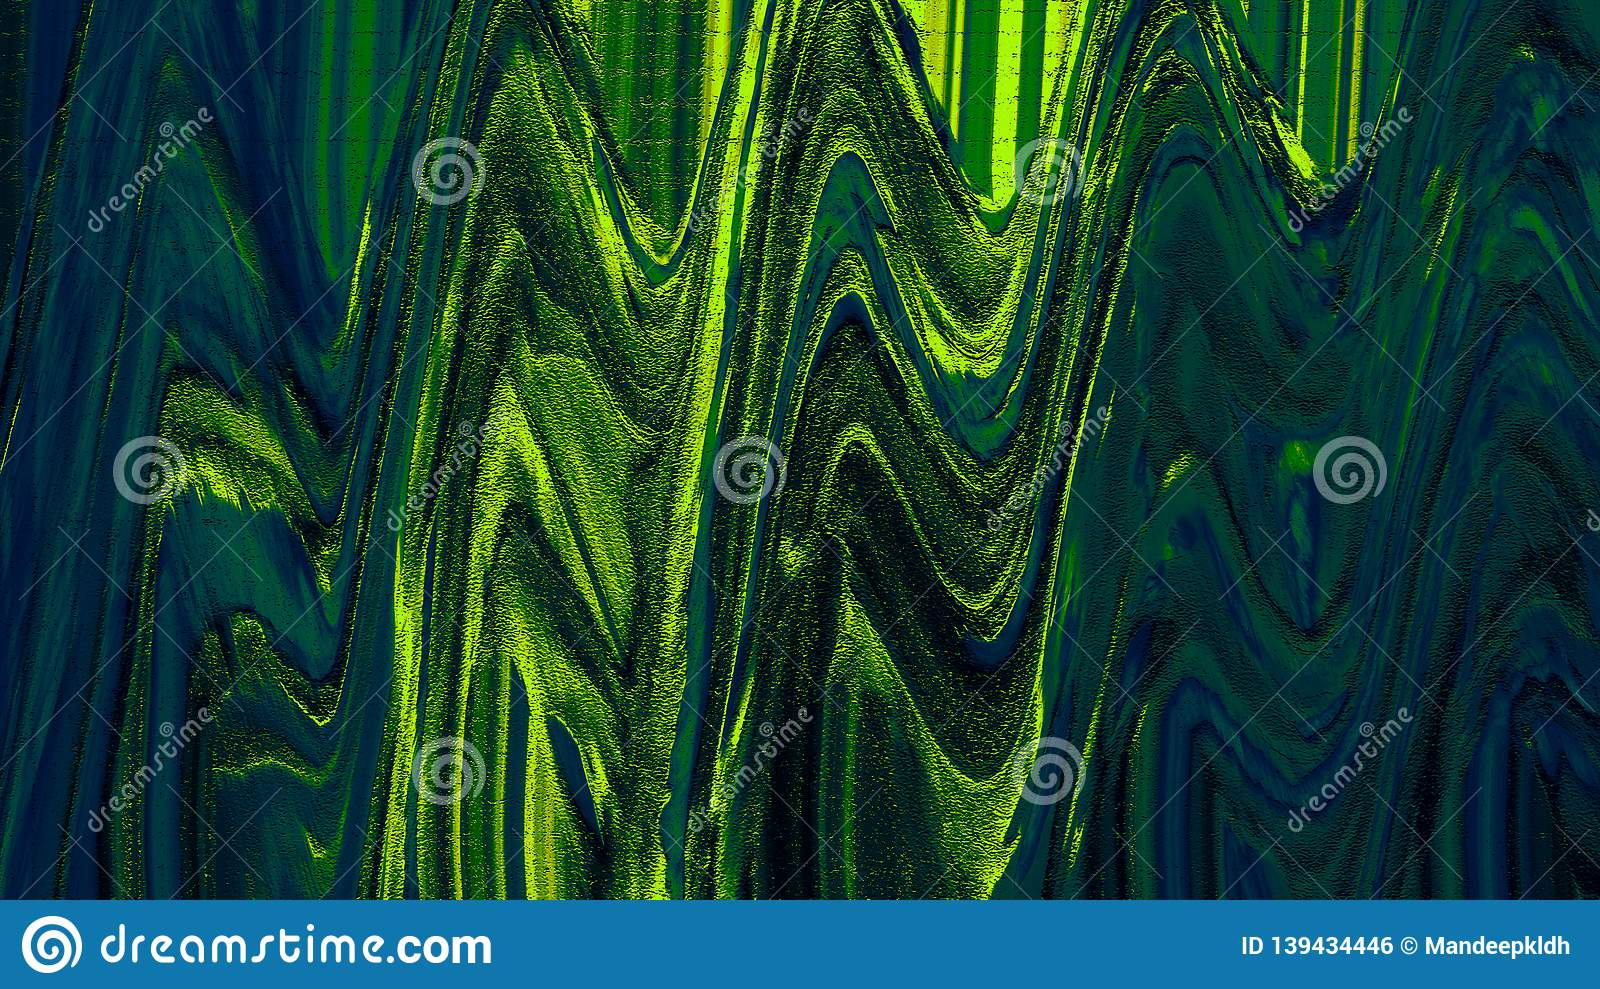 Acrylic tinted brush strokes.Abstract theme. Grunge paint on background. Painted textured background. Color stained digital paper.